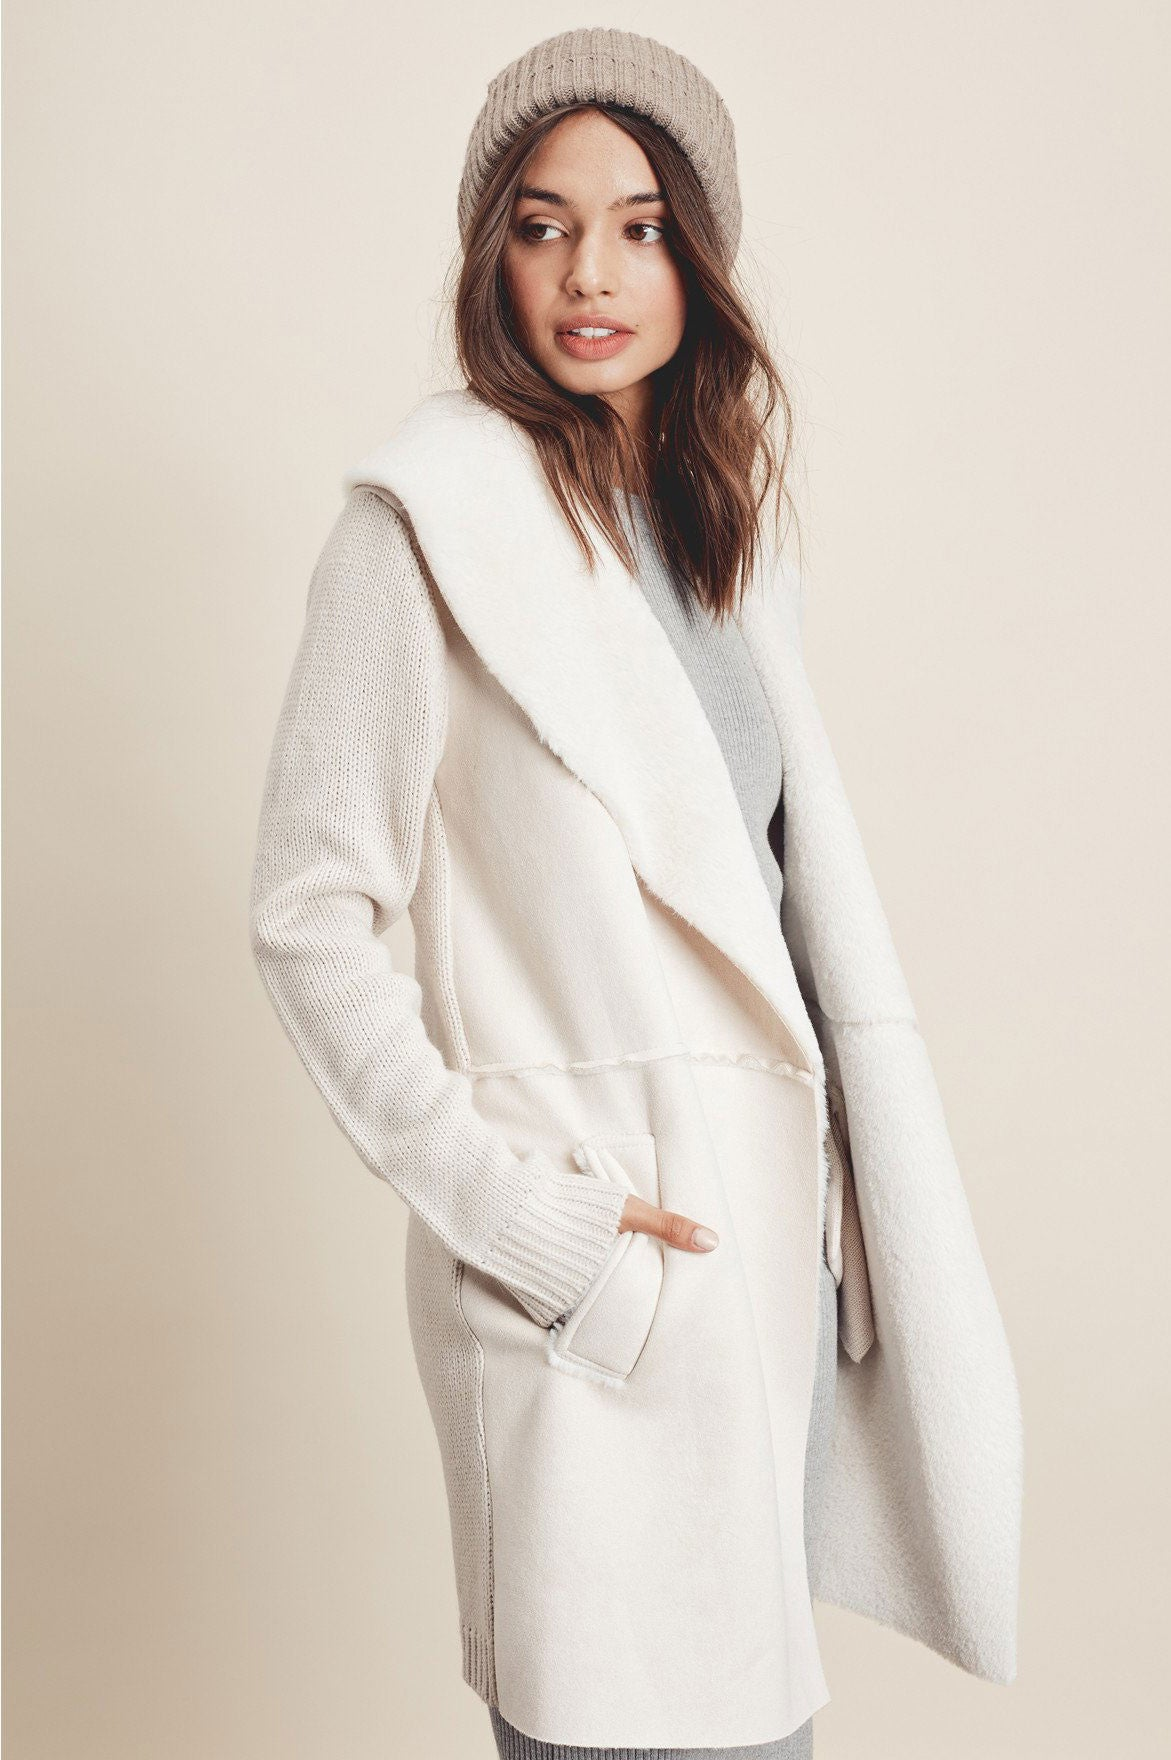 Women's cute fall outfits & white cardigan coat: Cream Coatigan, Winter wear.